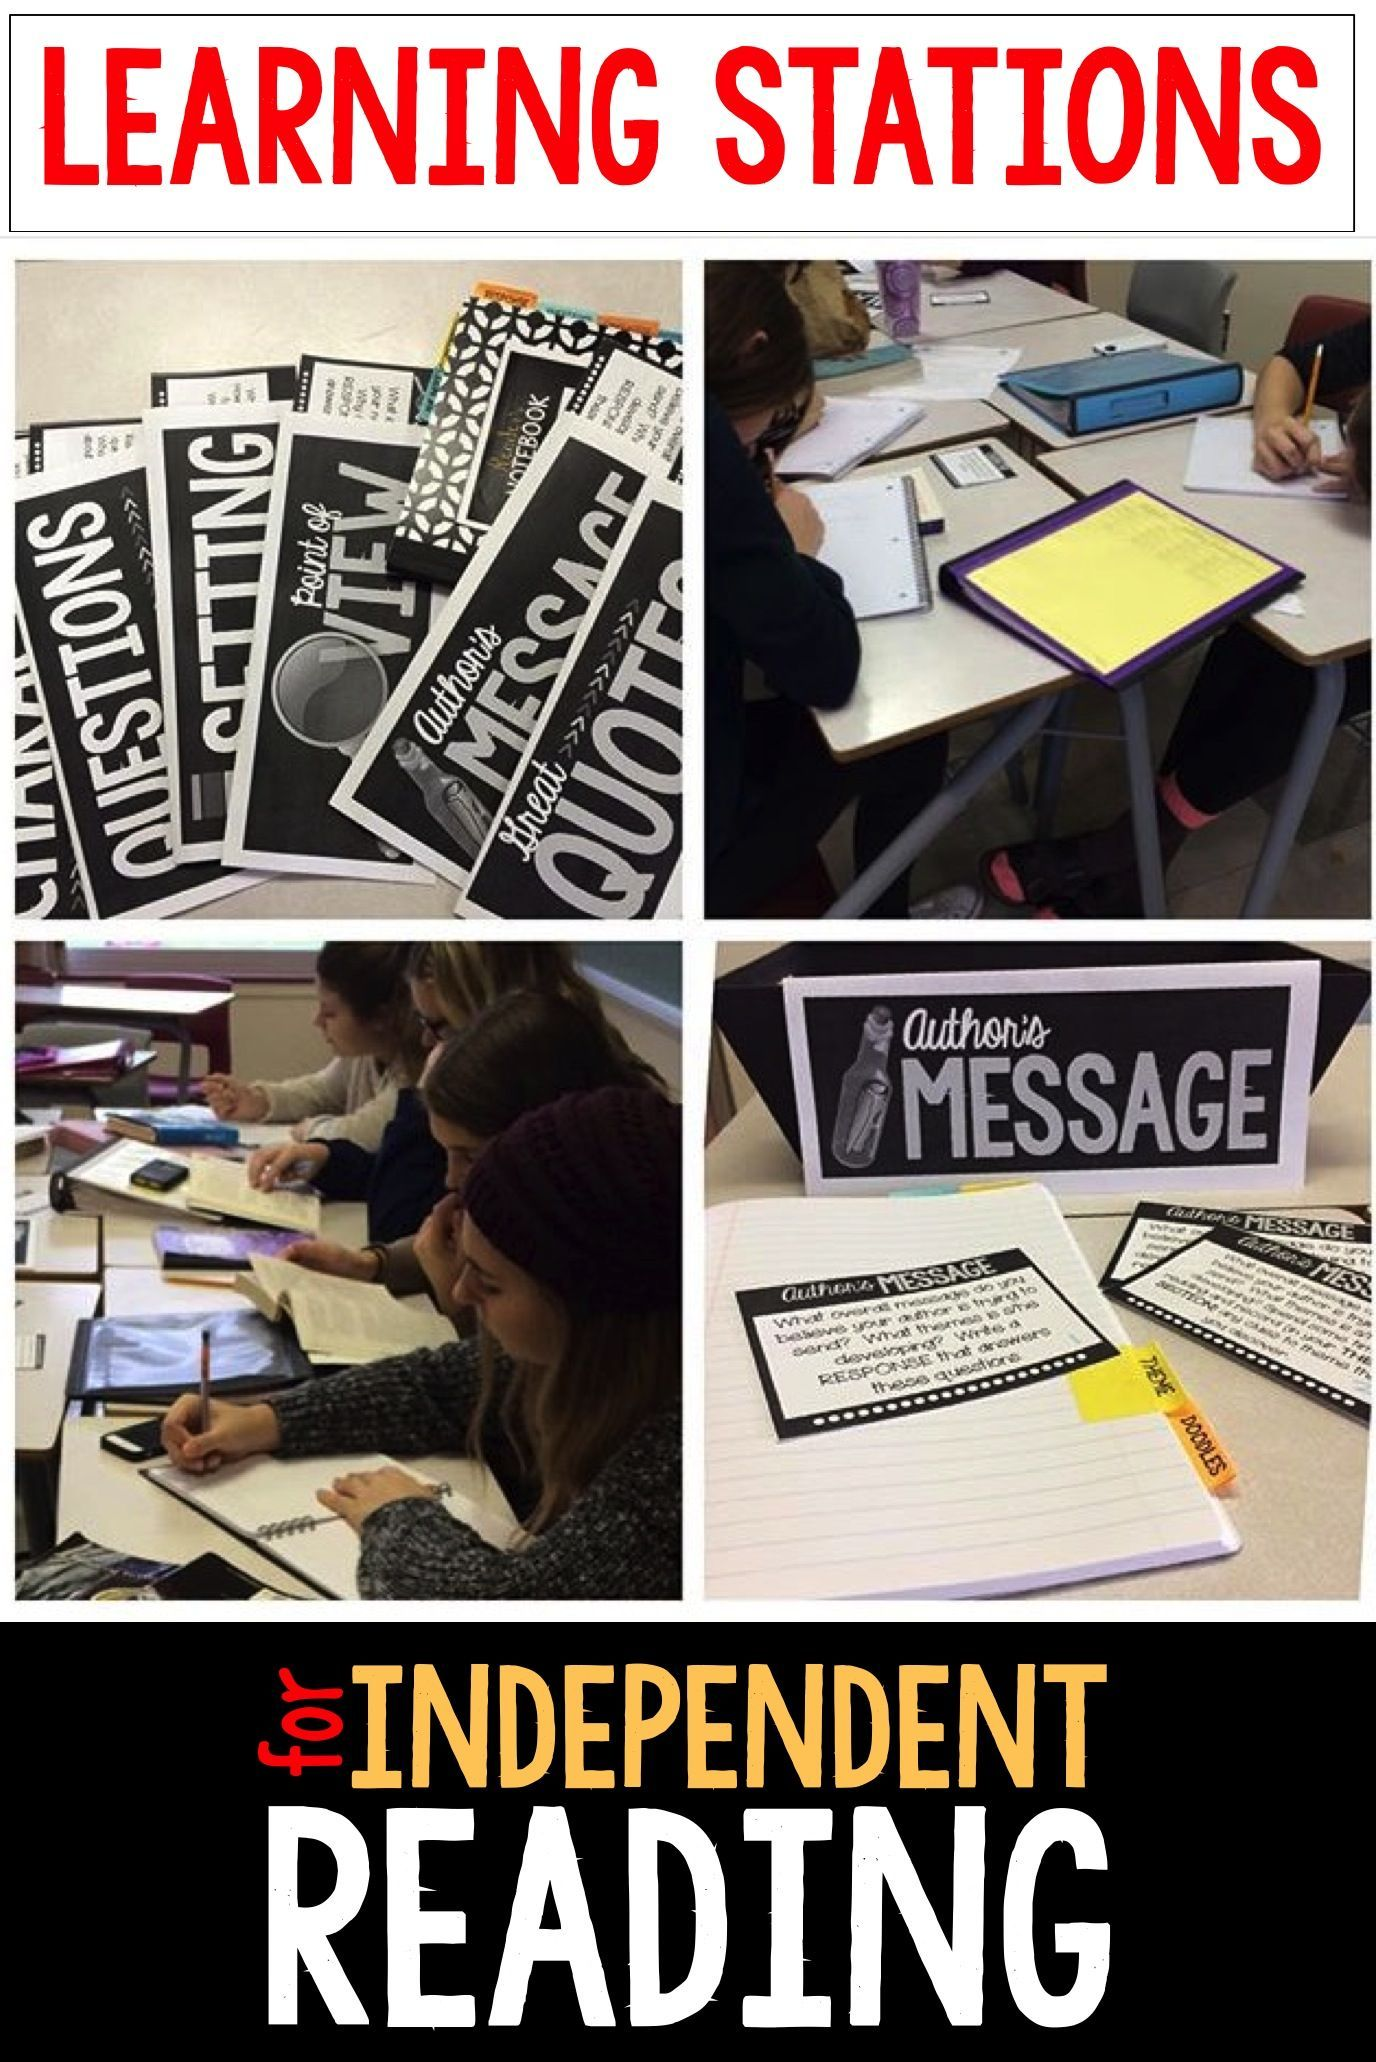 Independent Learning Stations Students Reading